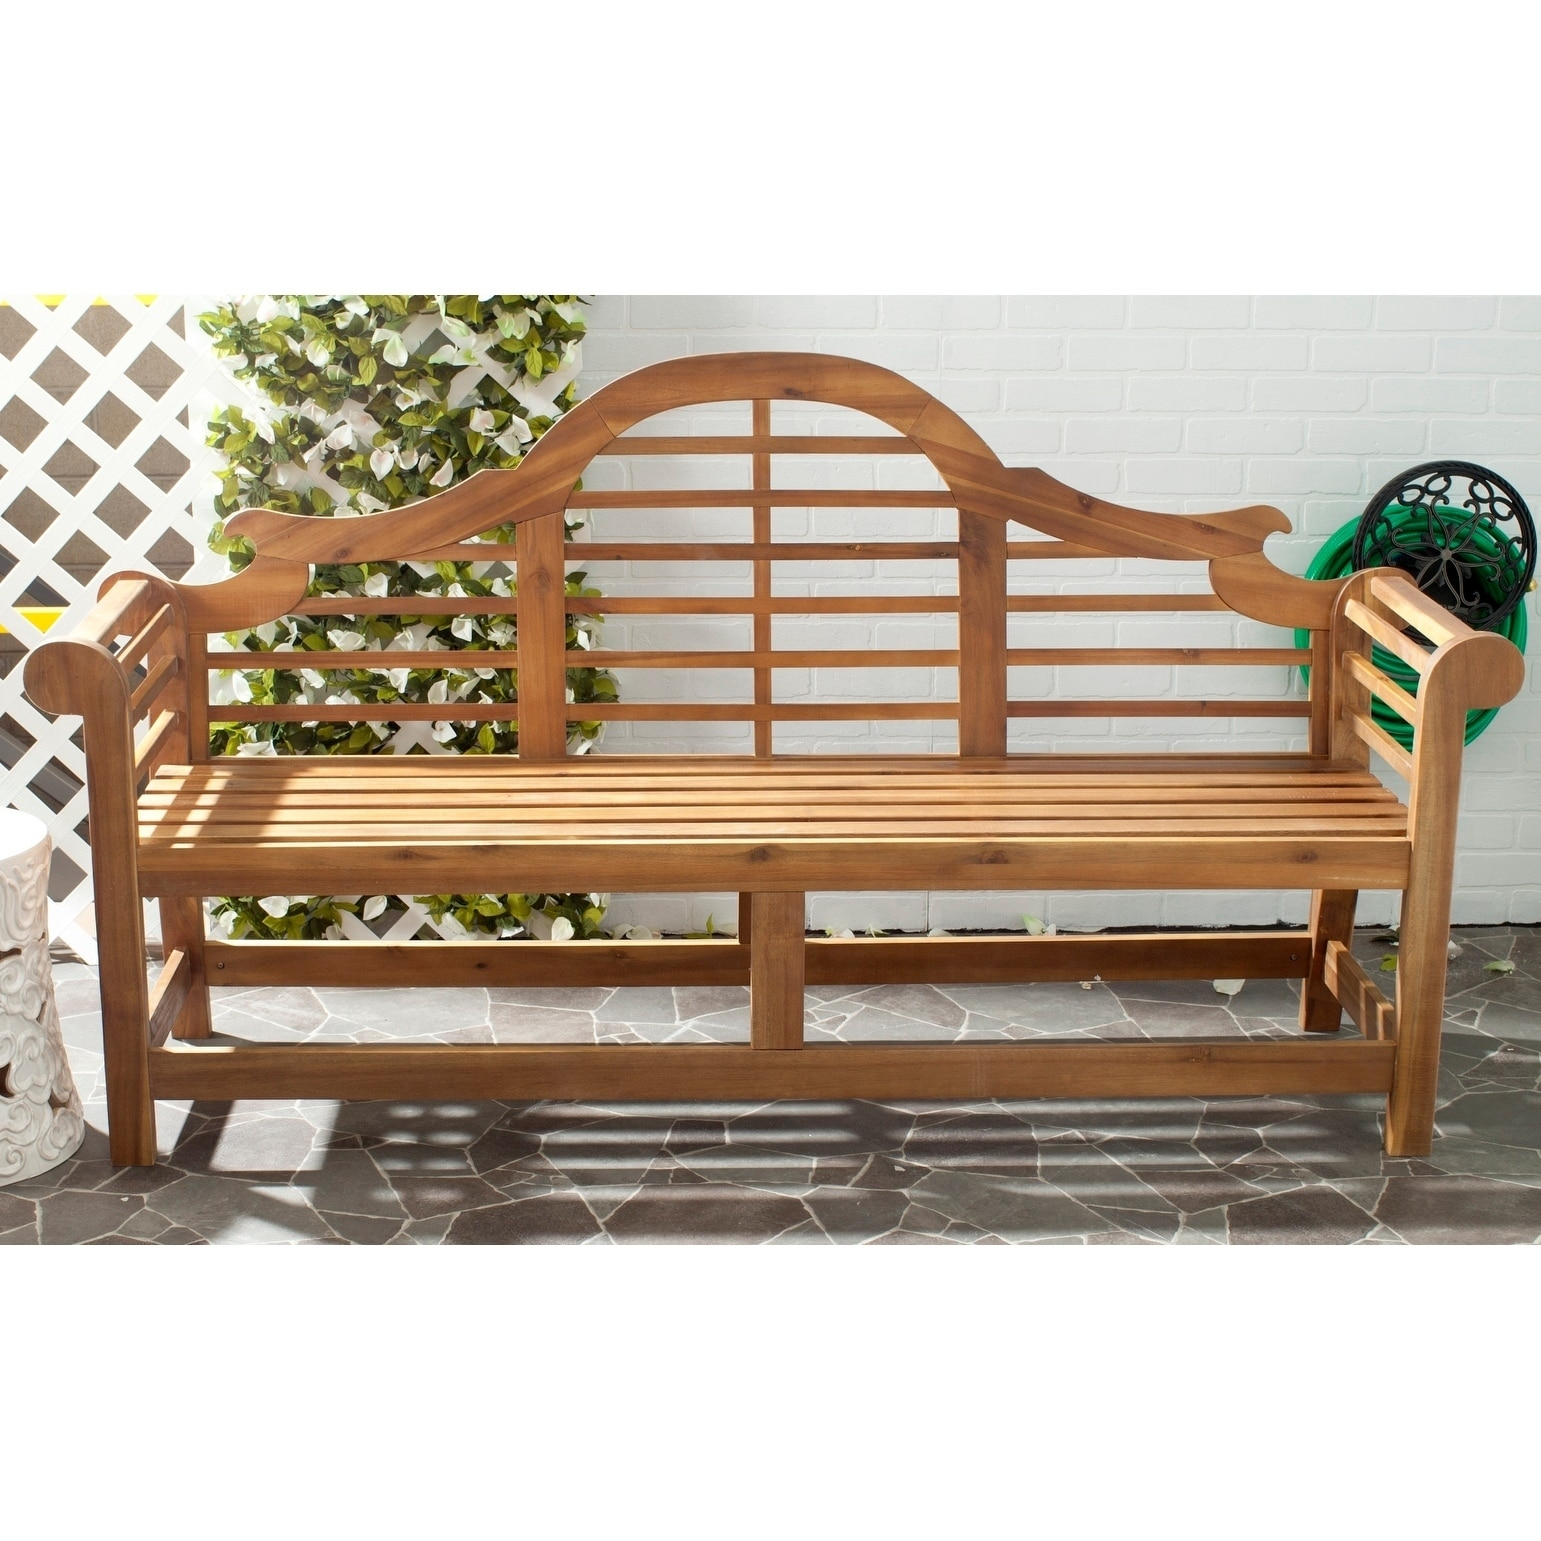 Safavieh Outdoor Living Khara Natural Acacia Wood Bench (...